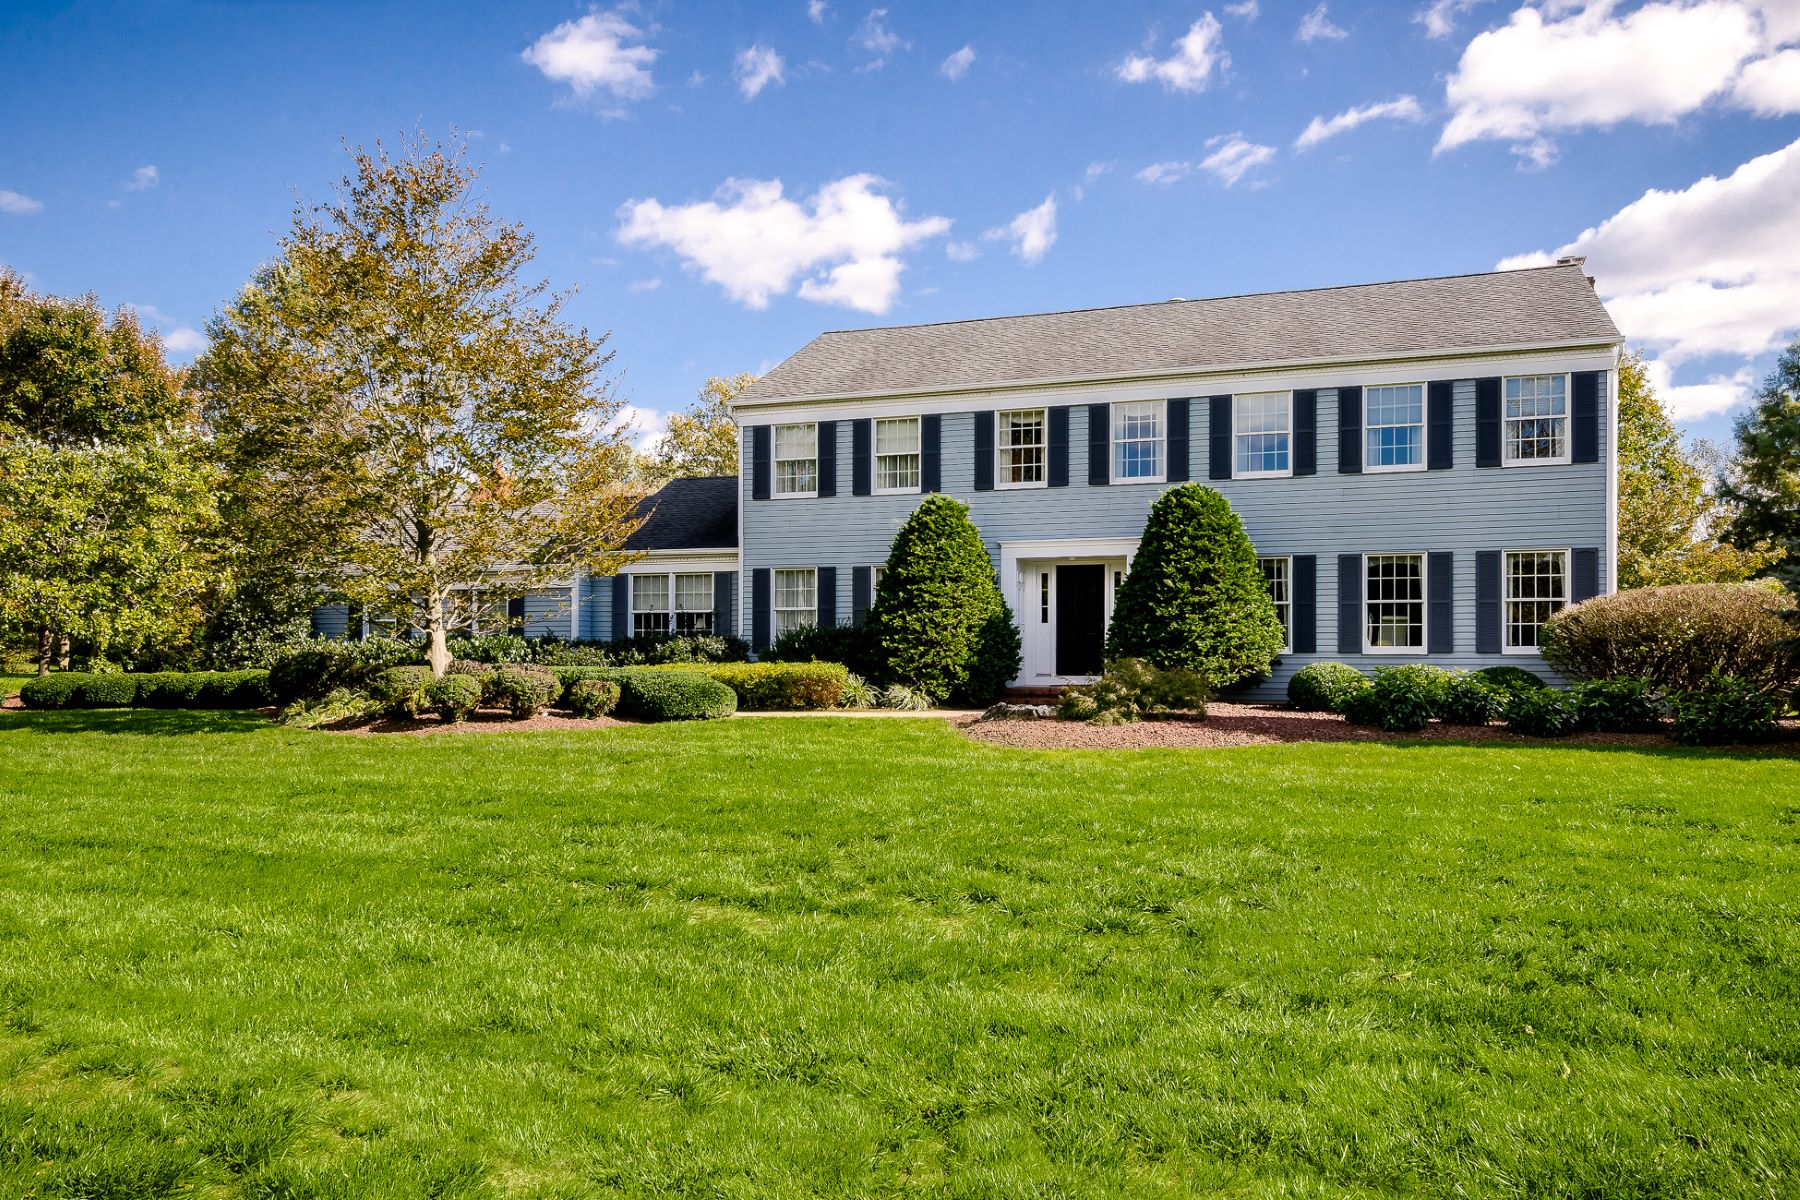 Property por un Venta en Beyond All Expectations in Princeton Oaks 9 Howard Drive, West Windsor, Nueva Jersey 08550 Estados Unidos